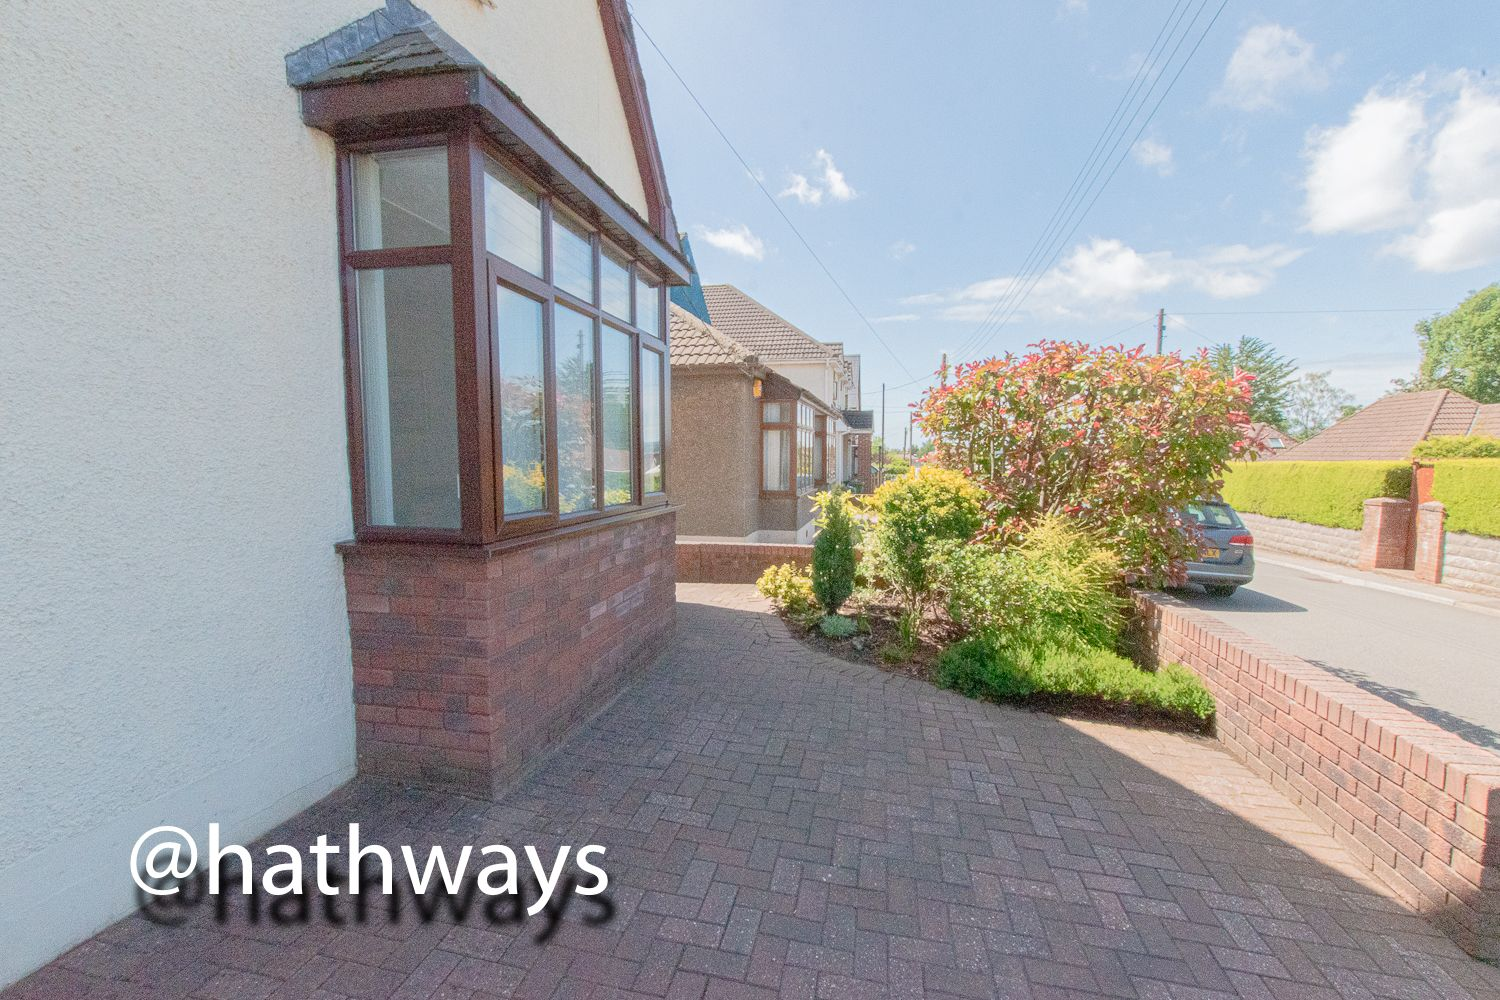 4 bed house for sale in Ashford Close South 57